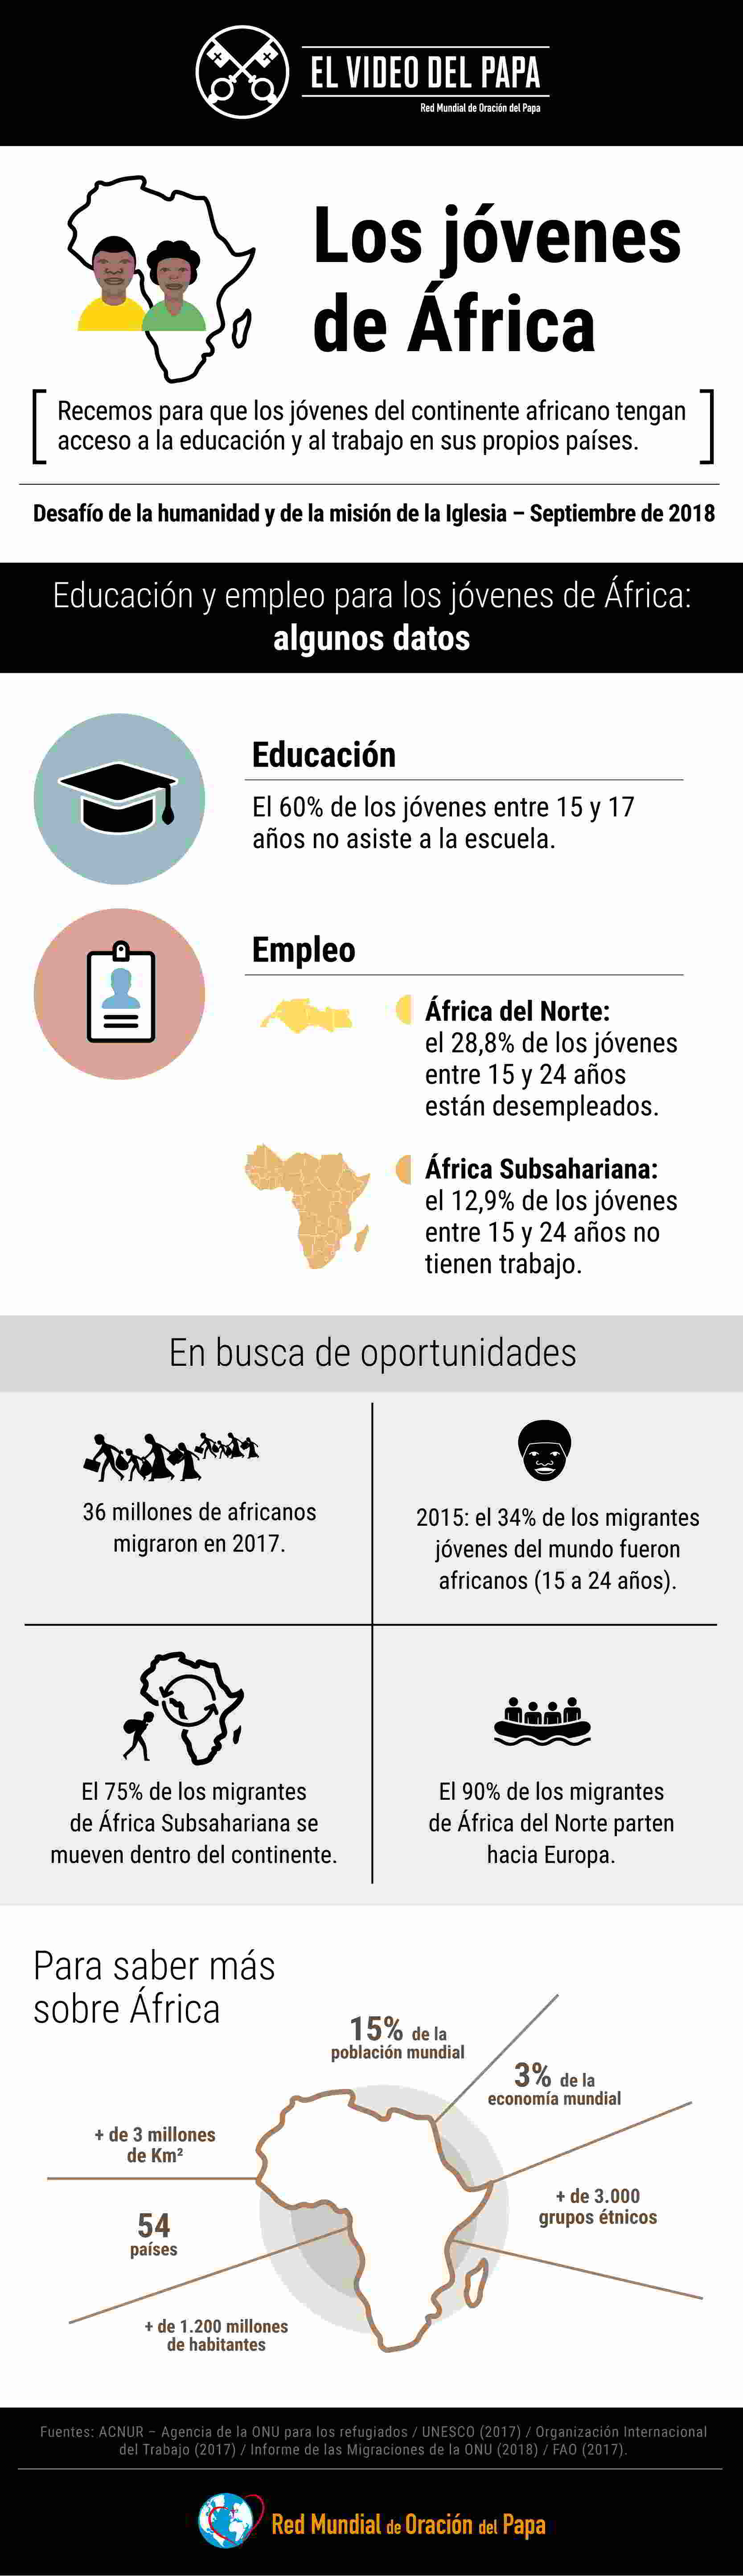 Infographic - The Pope Video 9 2018 - Young People in Africa - 2 Spanish